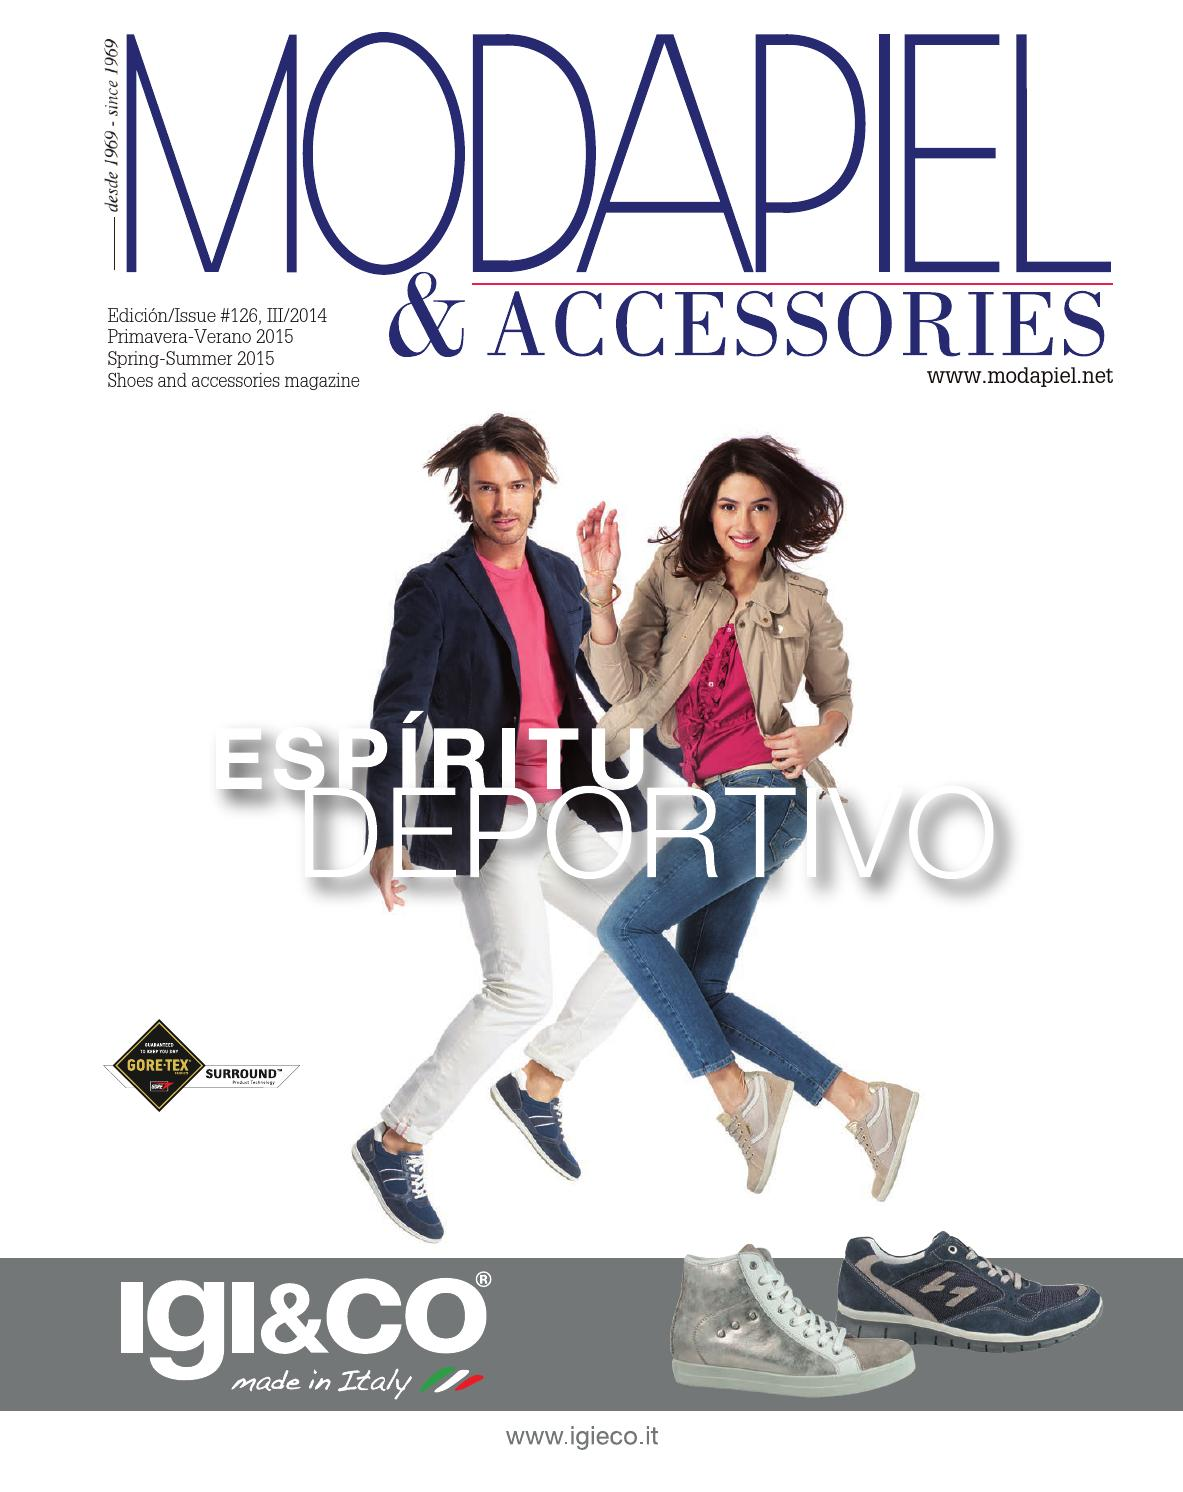 bfa3f06431d05 Modapiel 126 Shoes and accessories magazine by Prensa Técnica S.L. - issuu